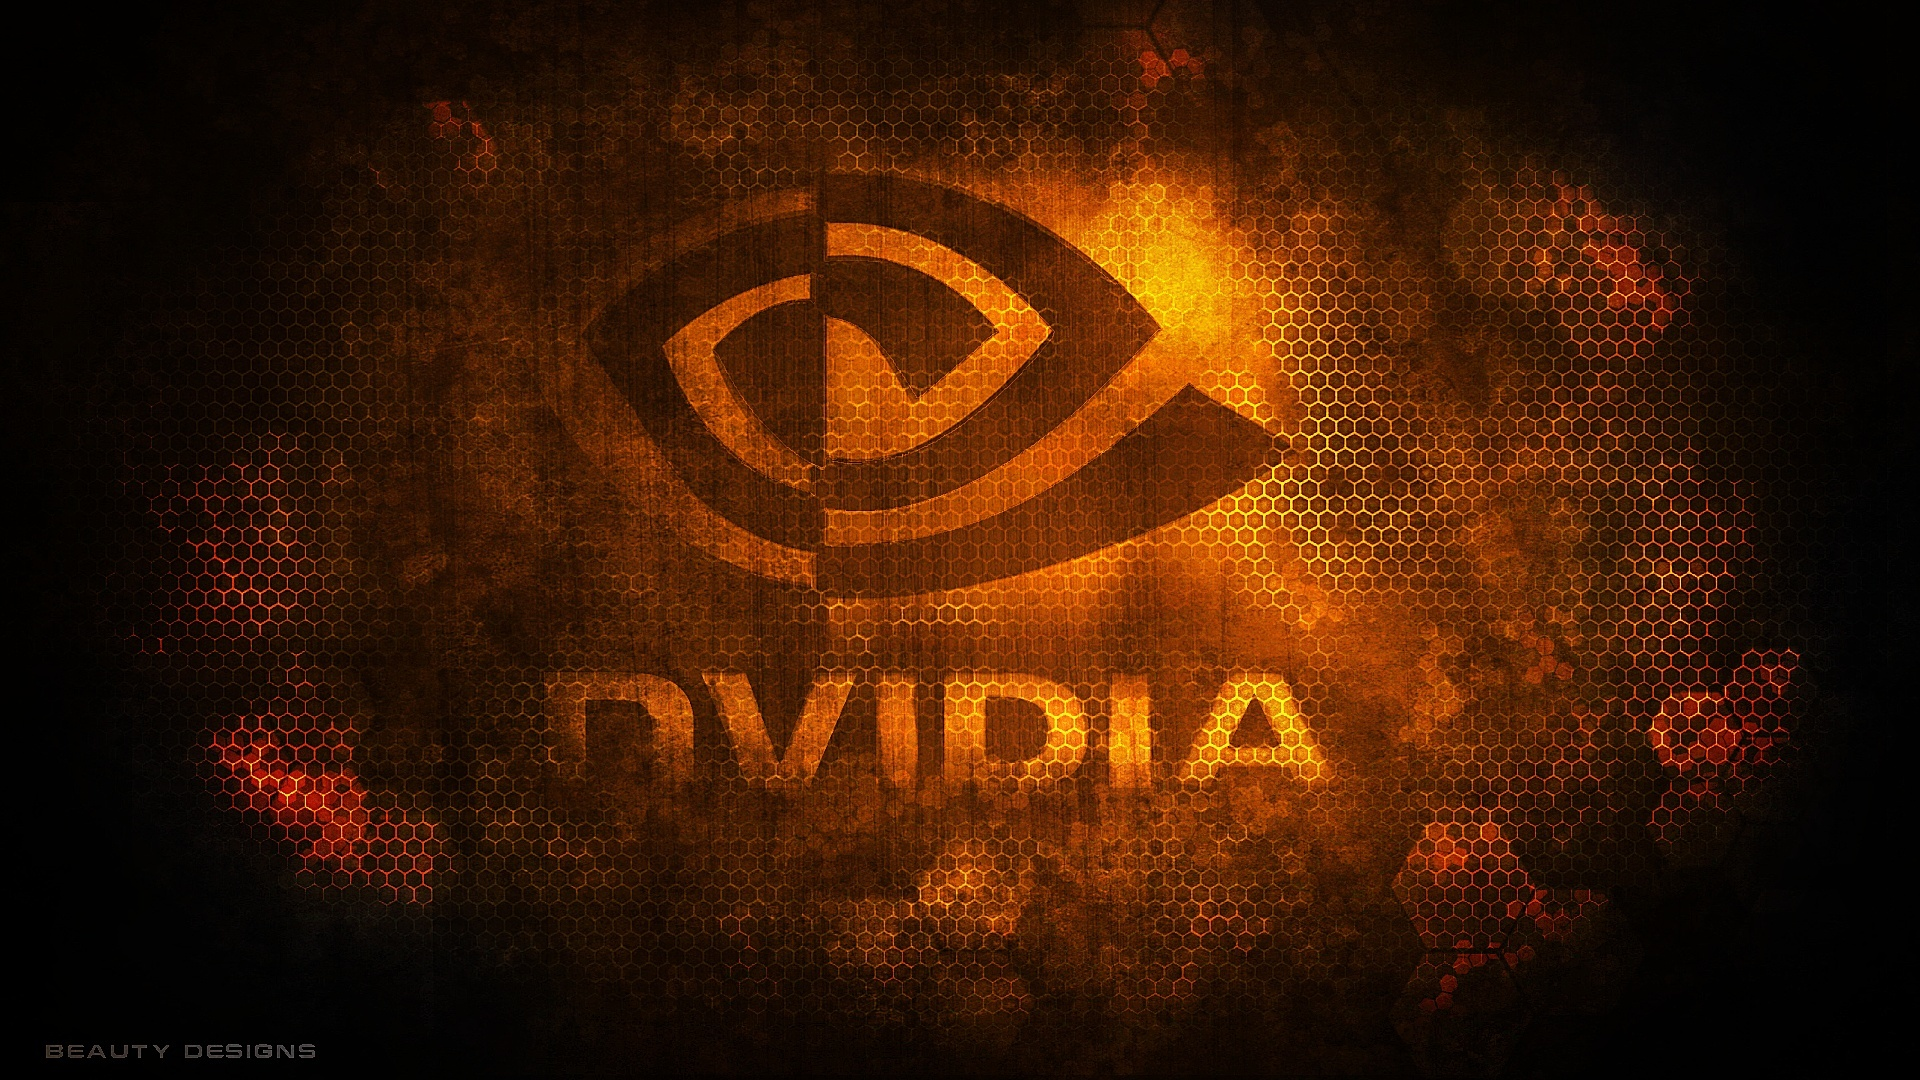 NVIDIA HD Wallpaper - WallpaperSafari